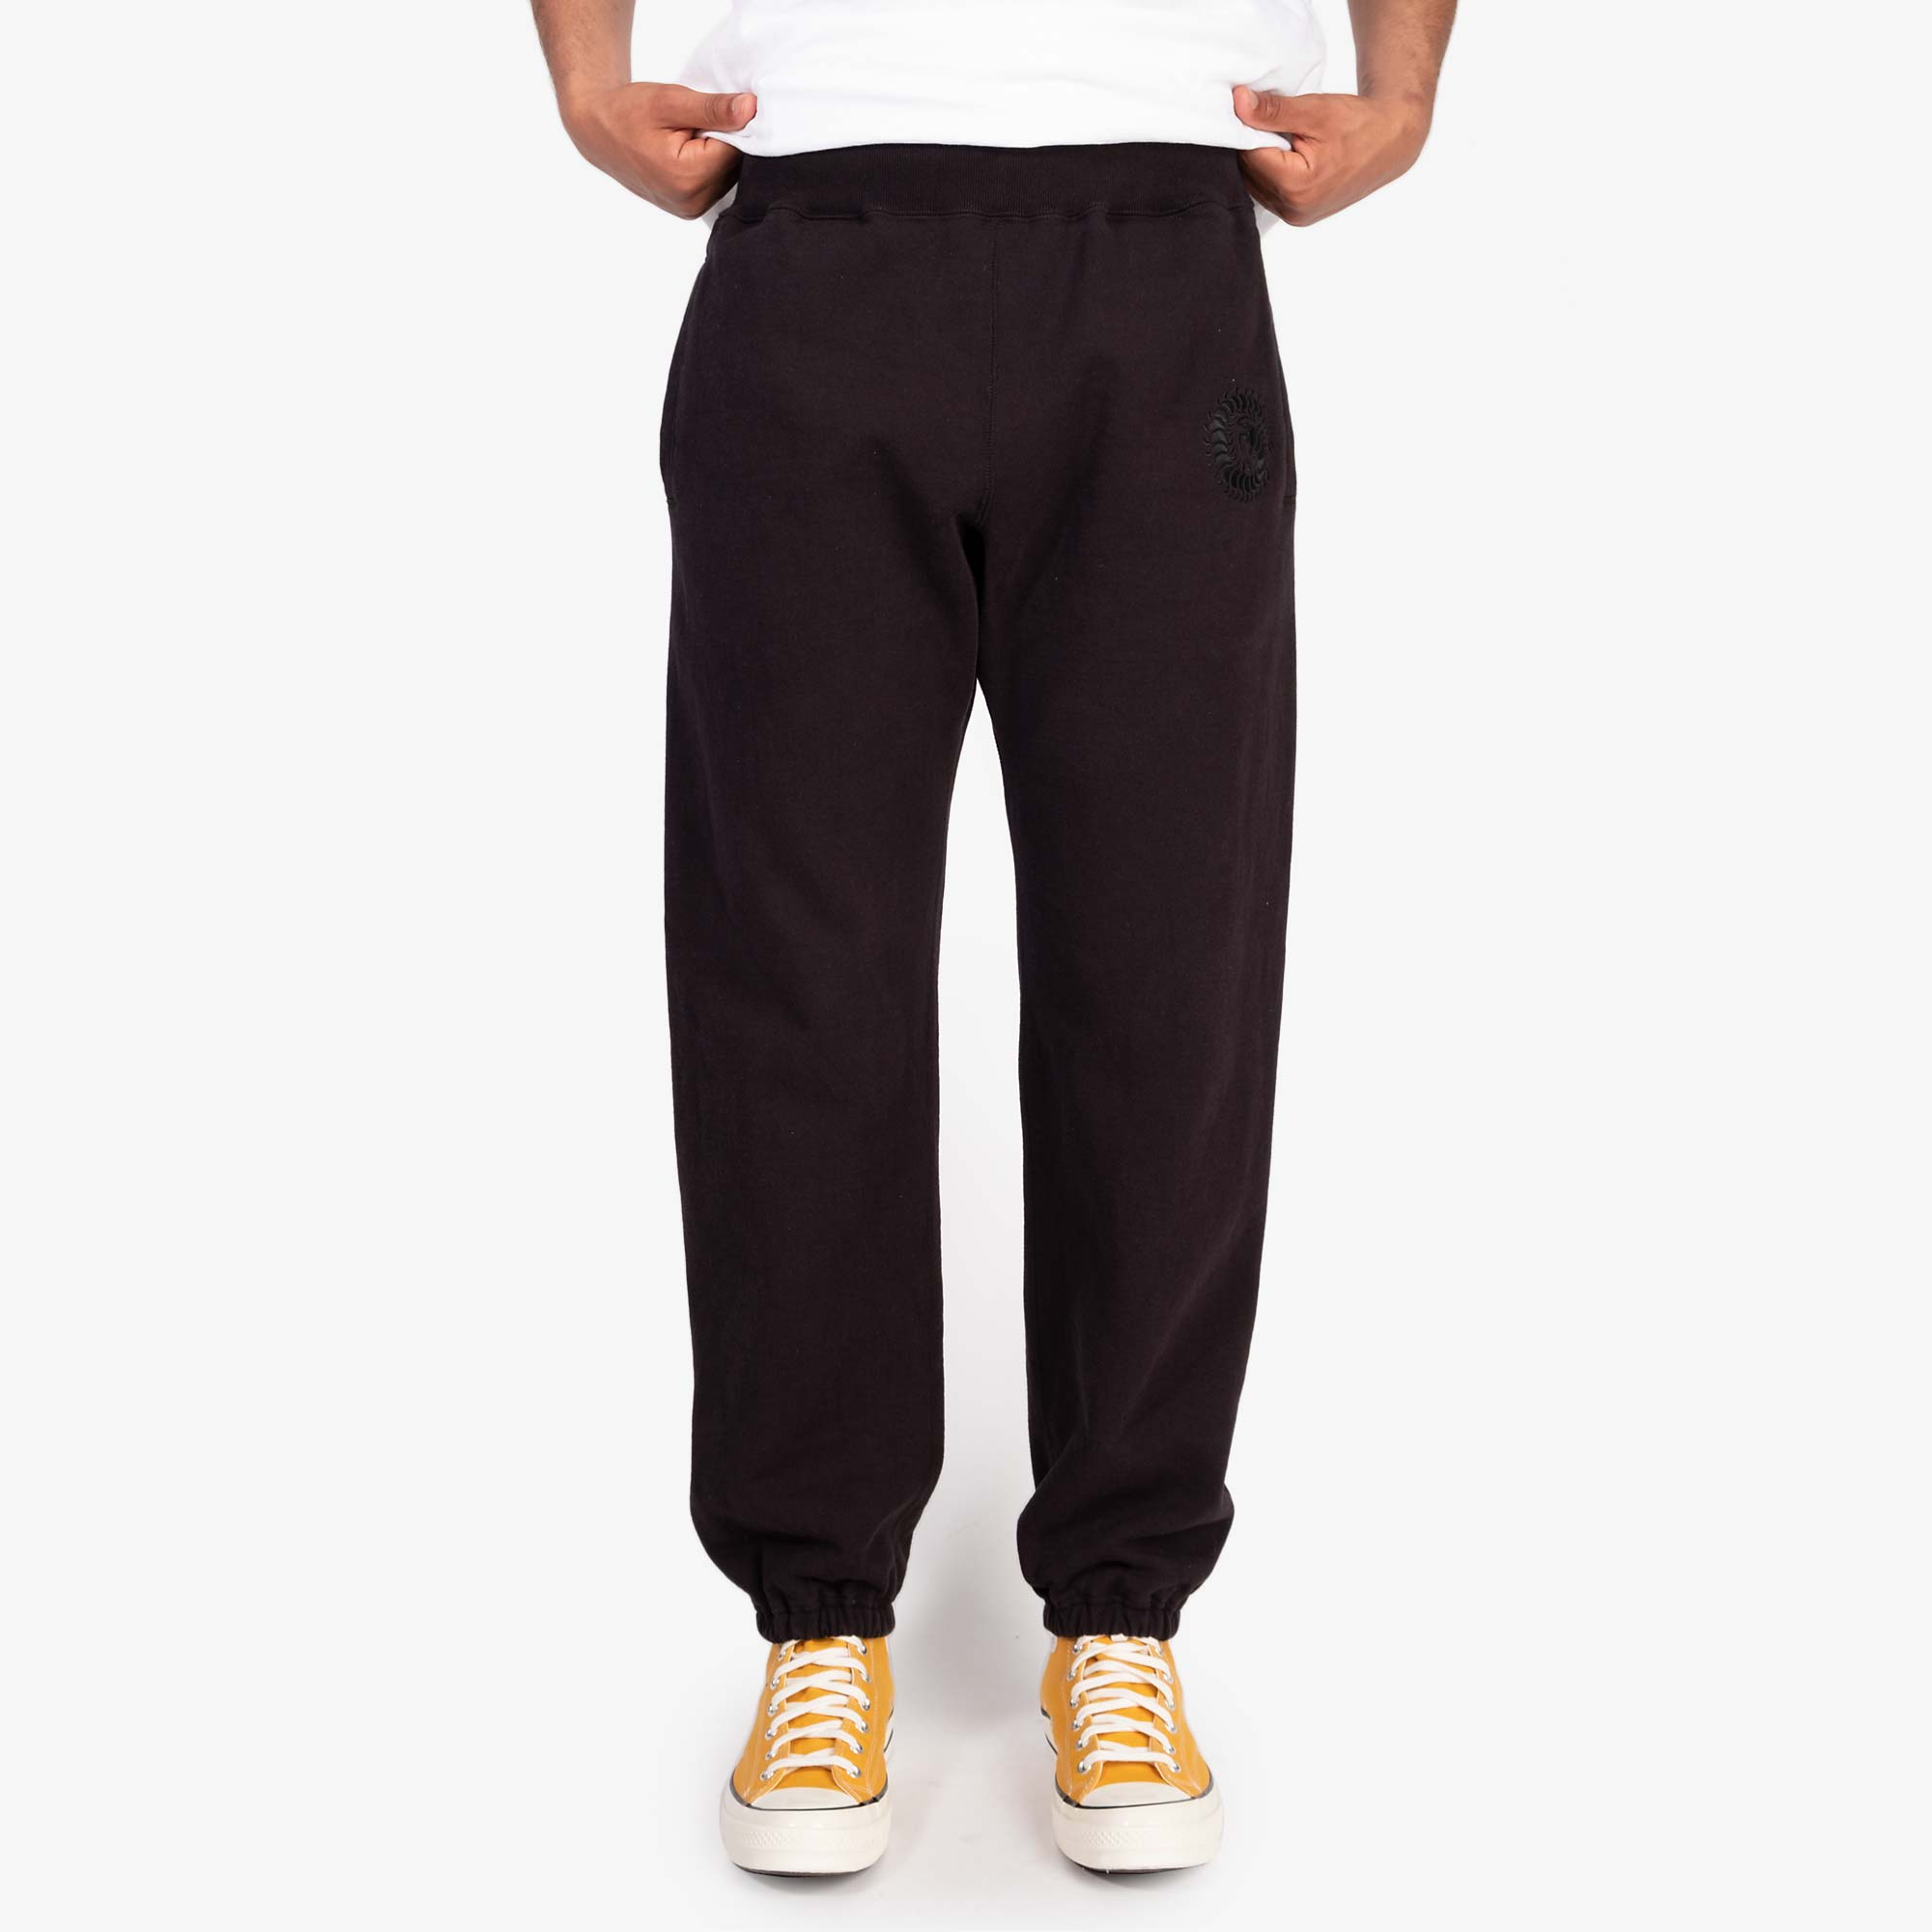 Undercover Centipede Heavy Sweatpants UCZ4510 - Black 9